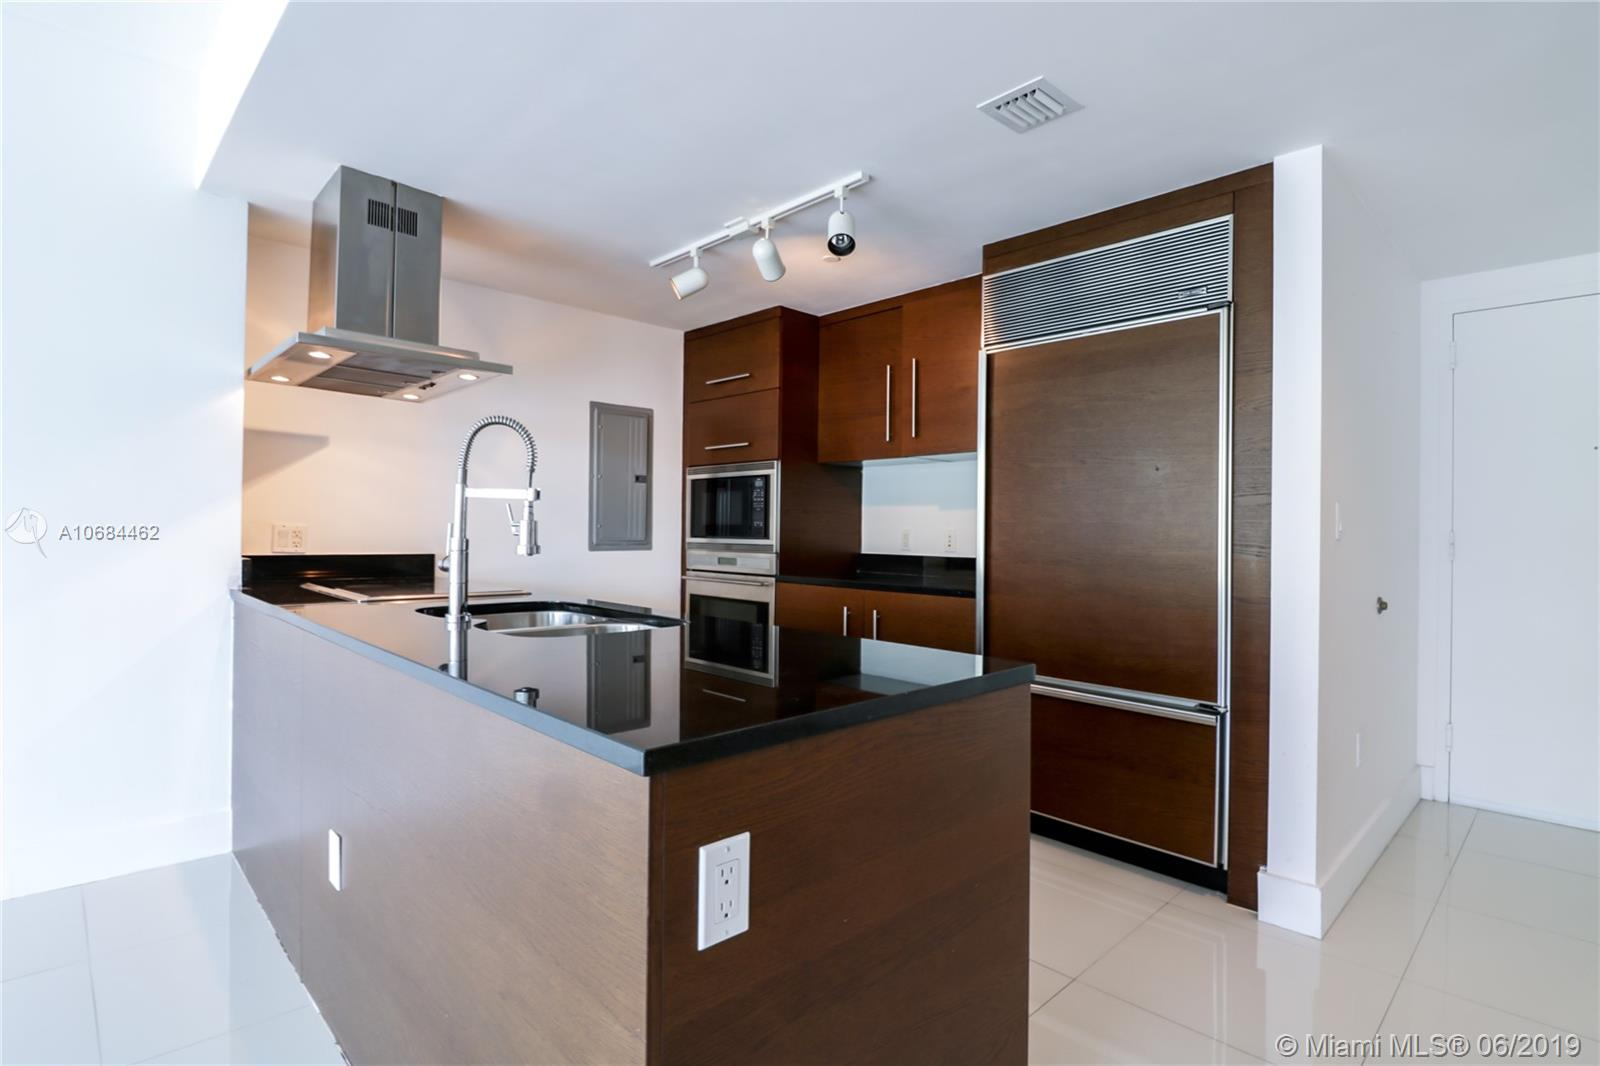 Icon Brickell 2 #403 - 495 Brickell Ave #403, Miami, FL 33131